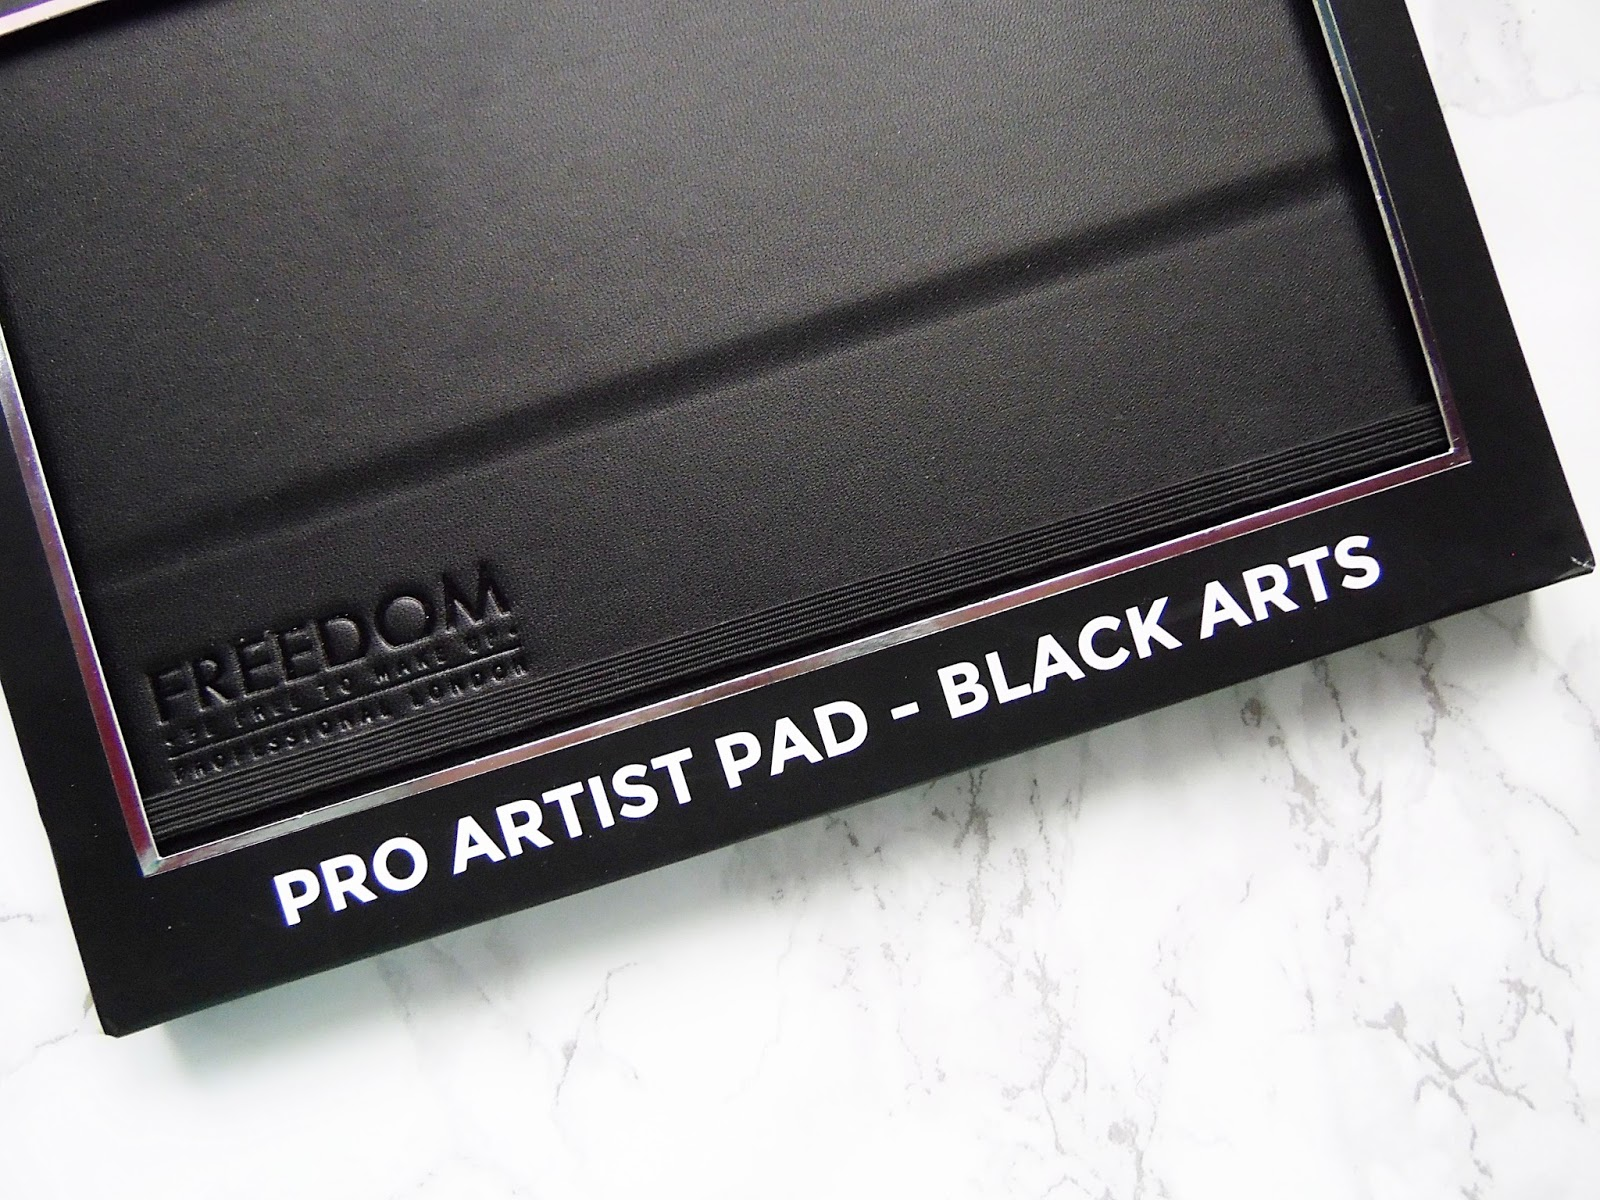 Freedom Black Arts Pro Artist Pad